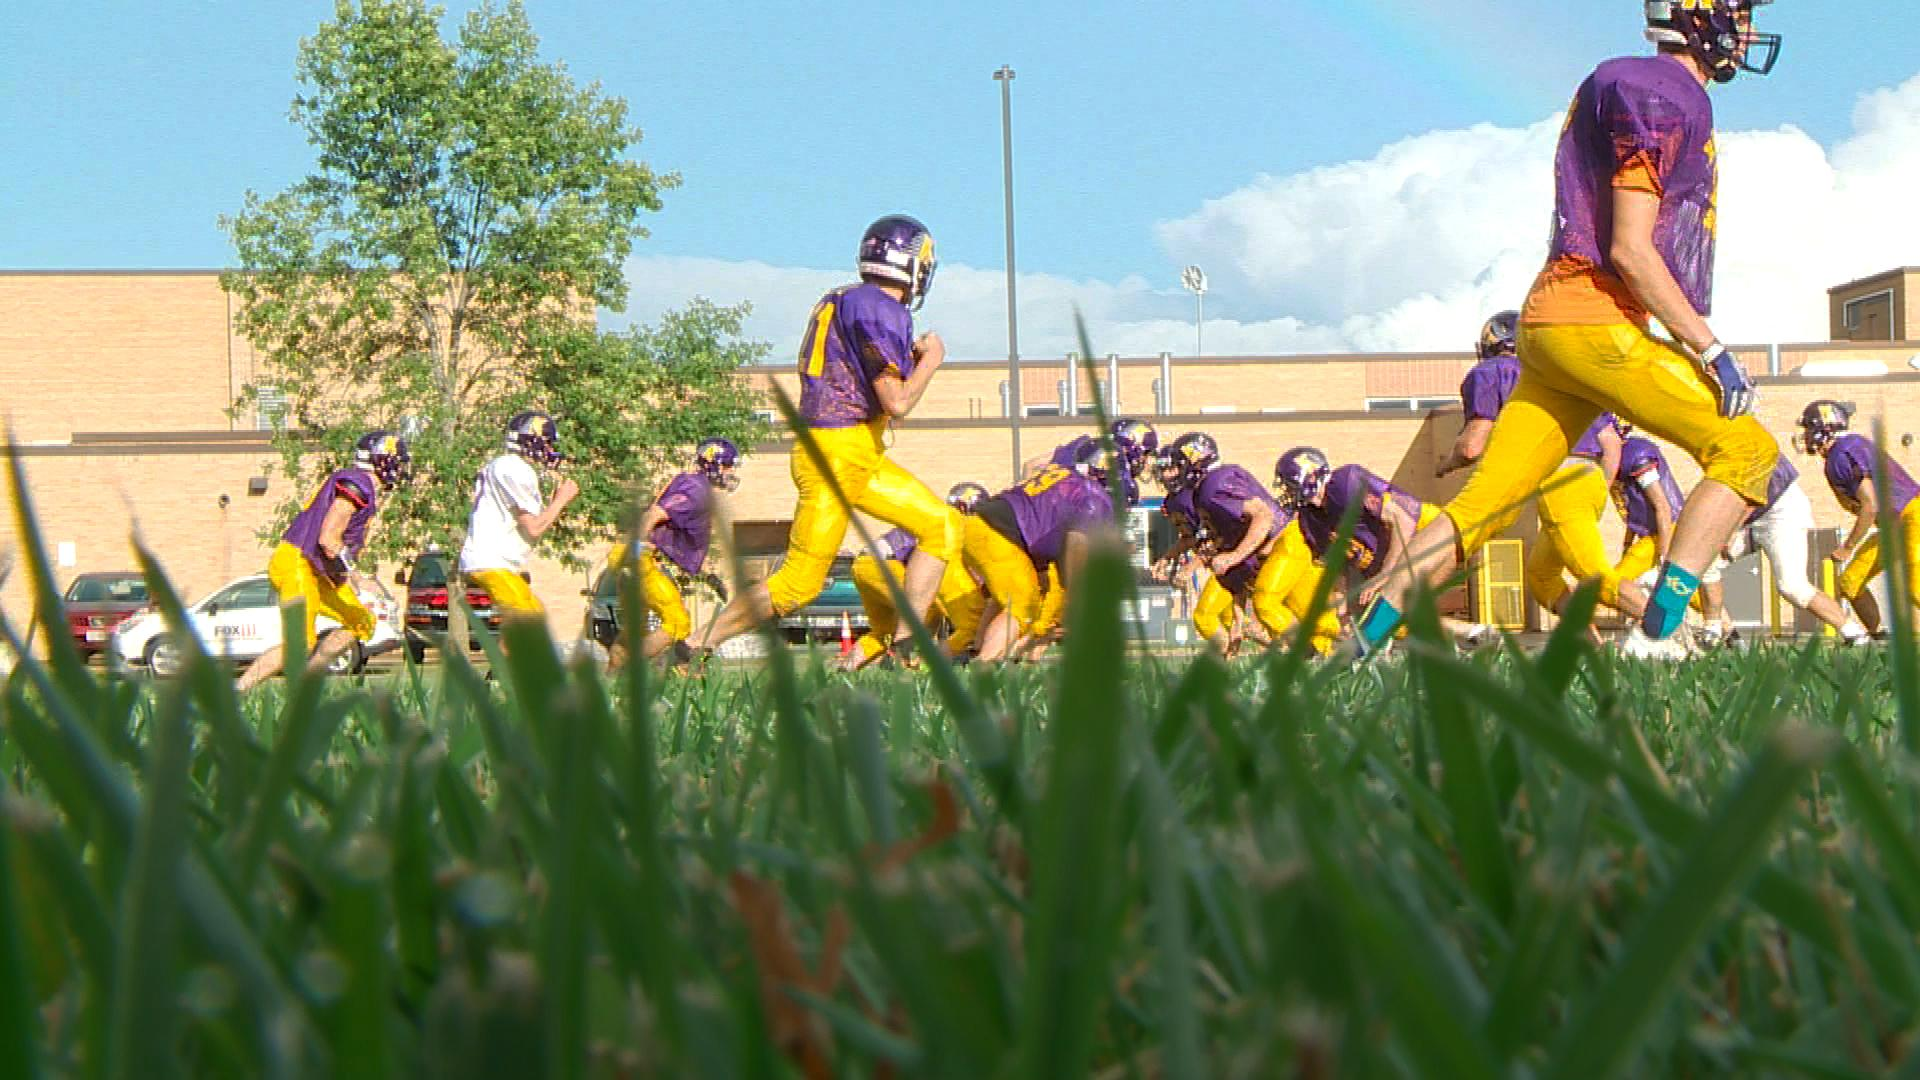 Kewaunee is off to a hot start this season, having won all three of its games by large margins.